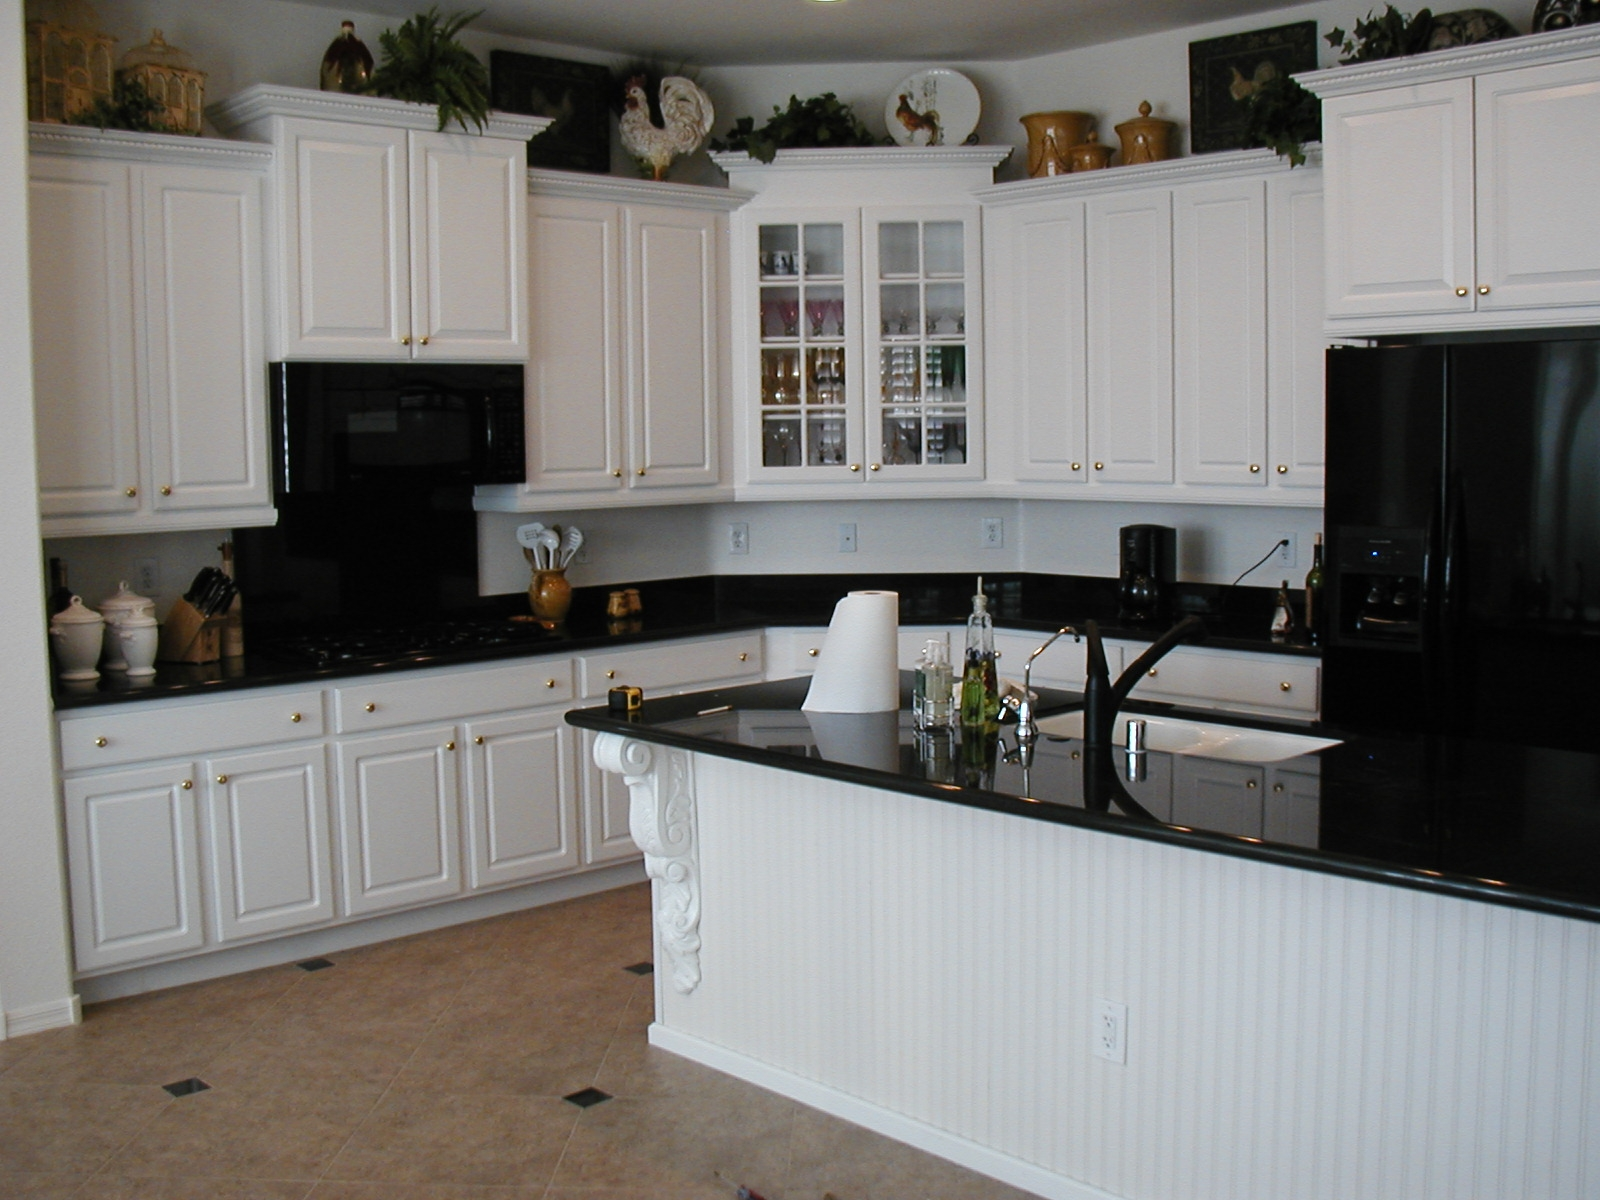 HMH Designs: White Kitchen Cabinets: Timeless And Transcendent